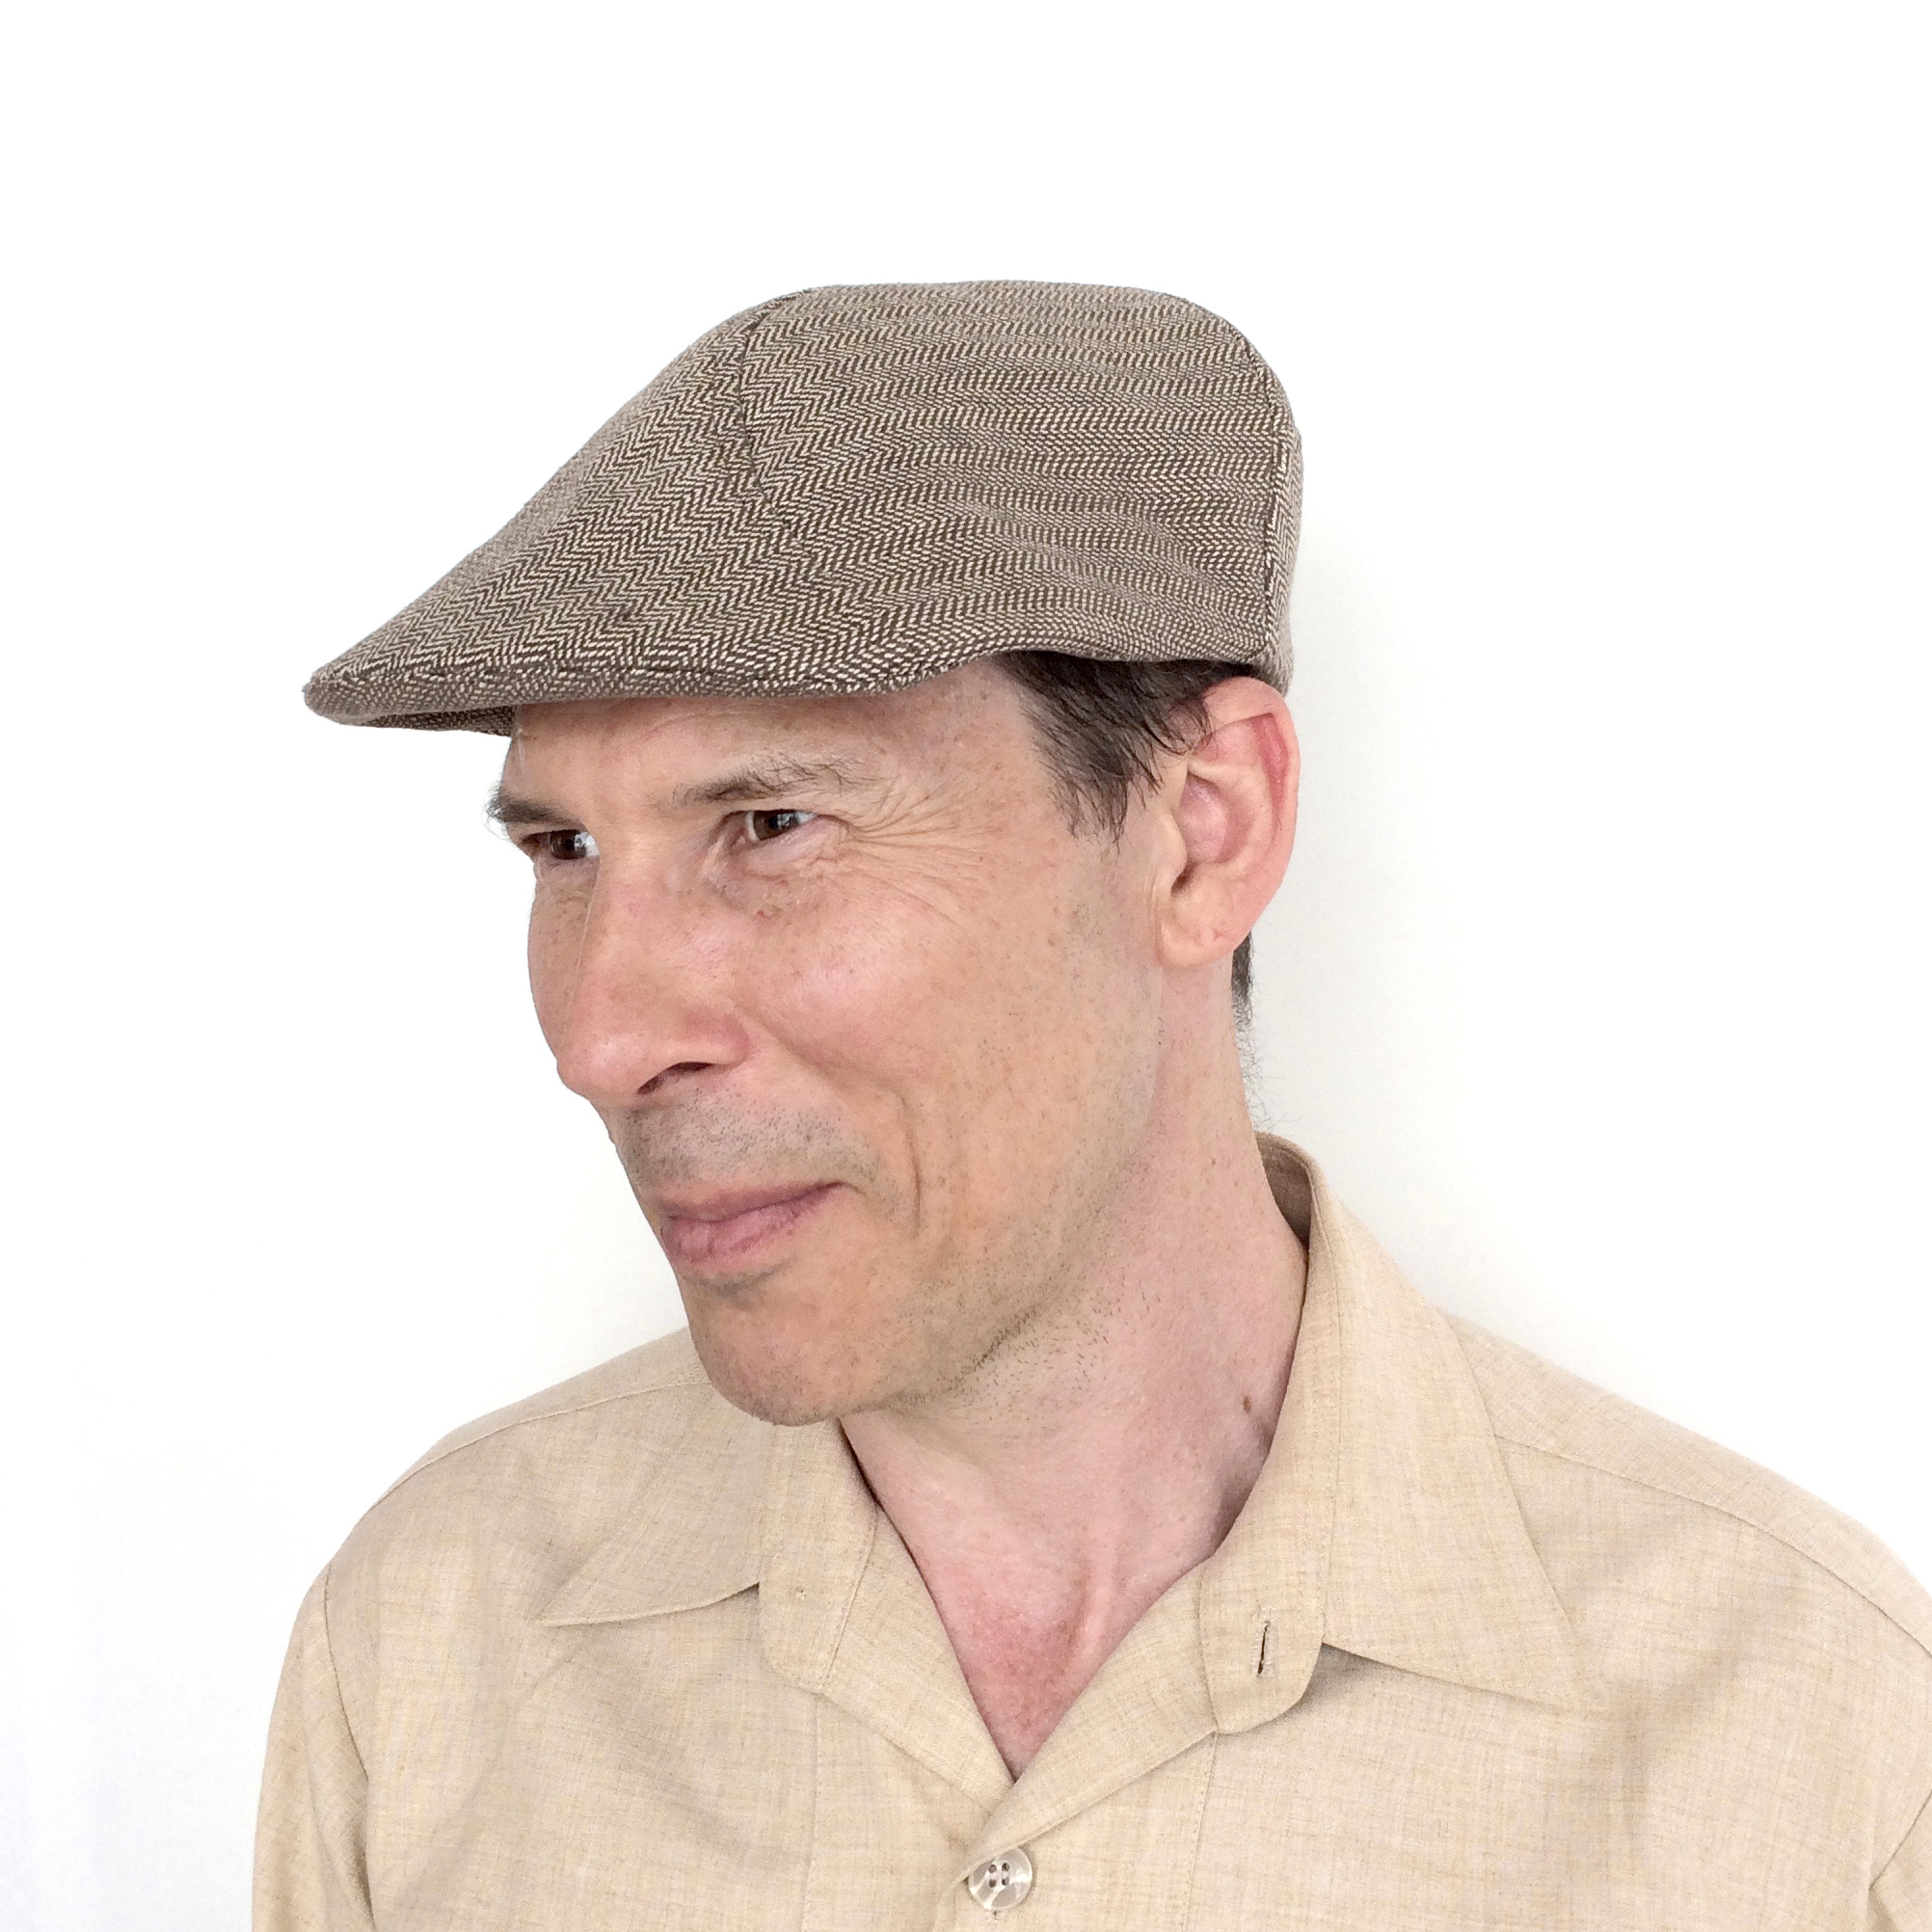 Adrian wears 'Clive' flat cap in herringbone organic cotton   buy online